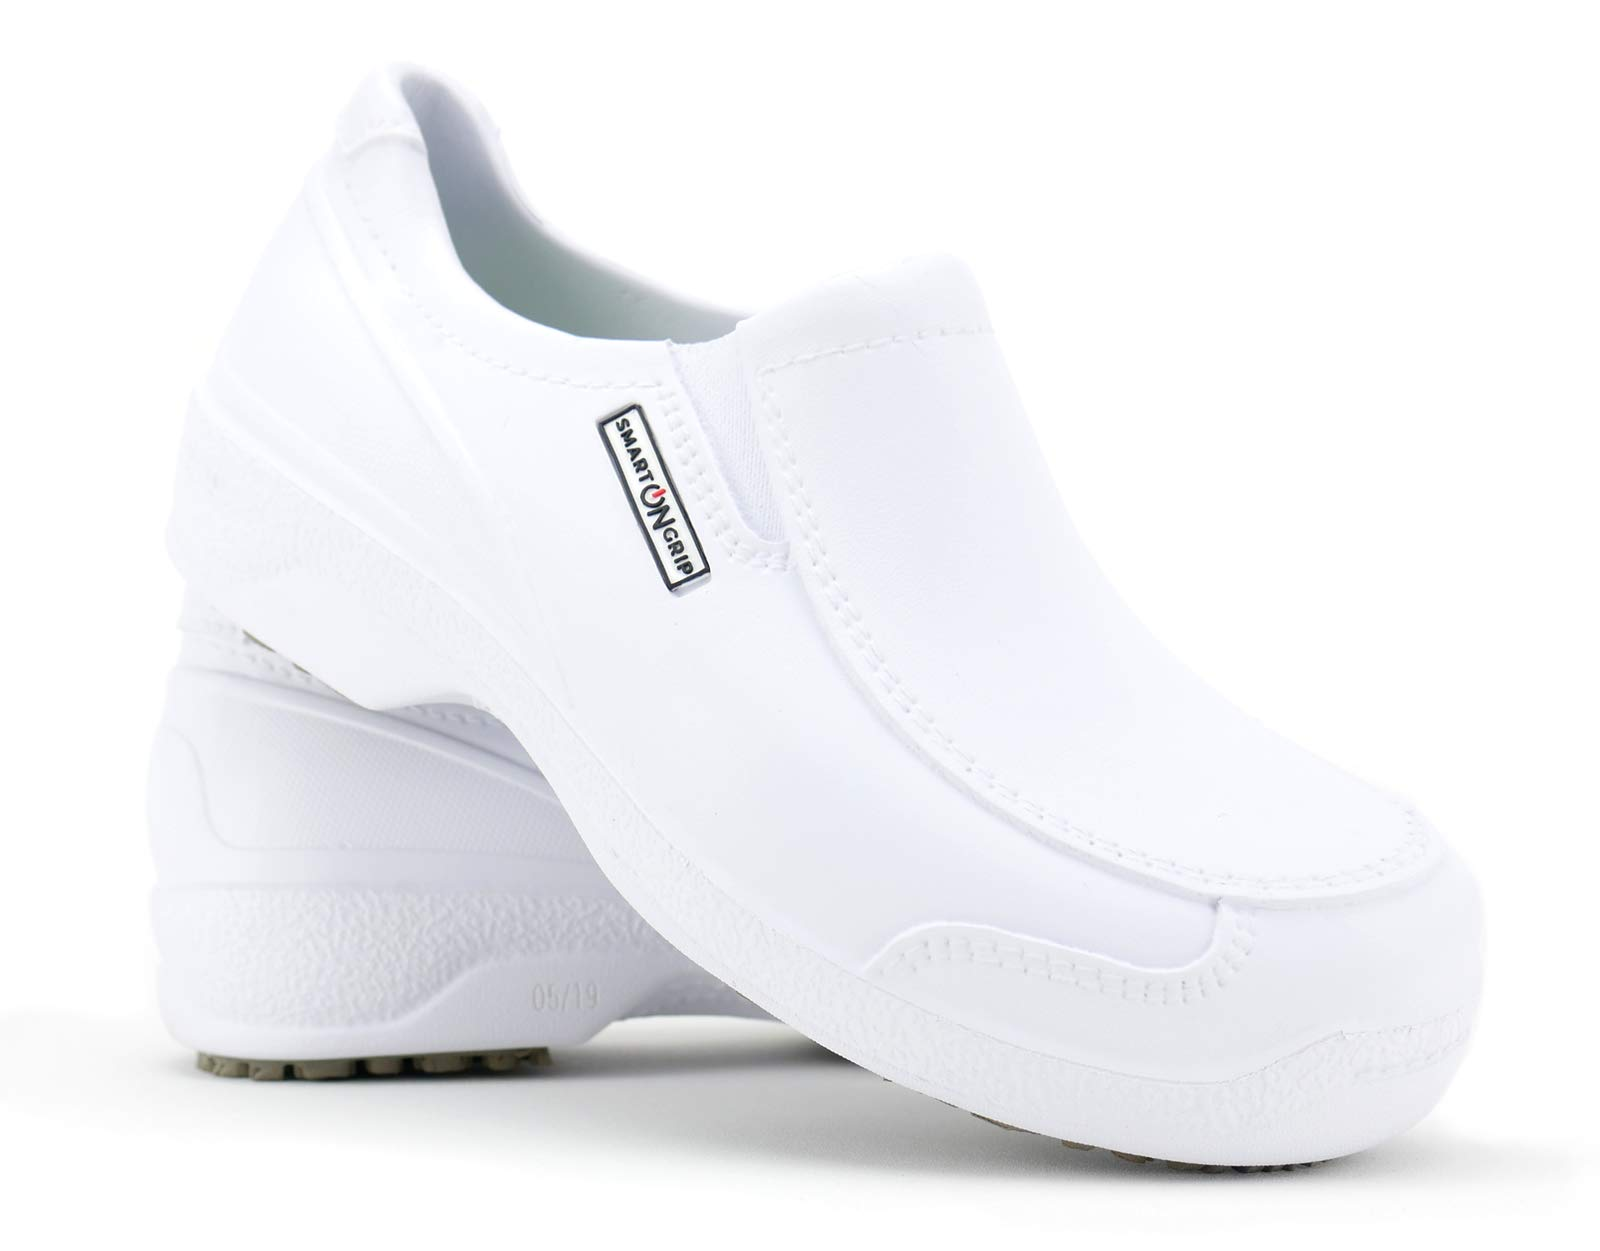 Safety Toe Shoes - Non Slip Waterproof Professional Composite Toe Shoes for Women (6, White)